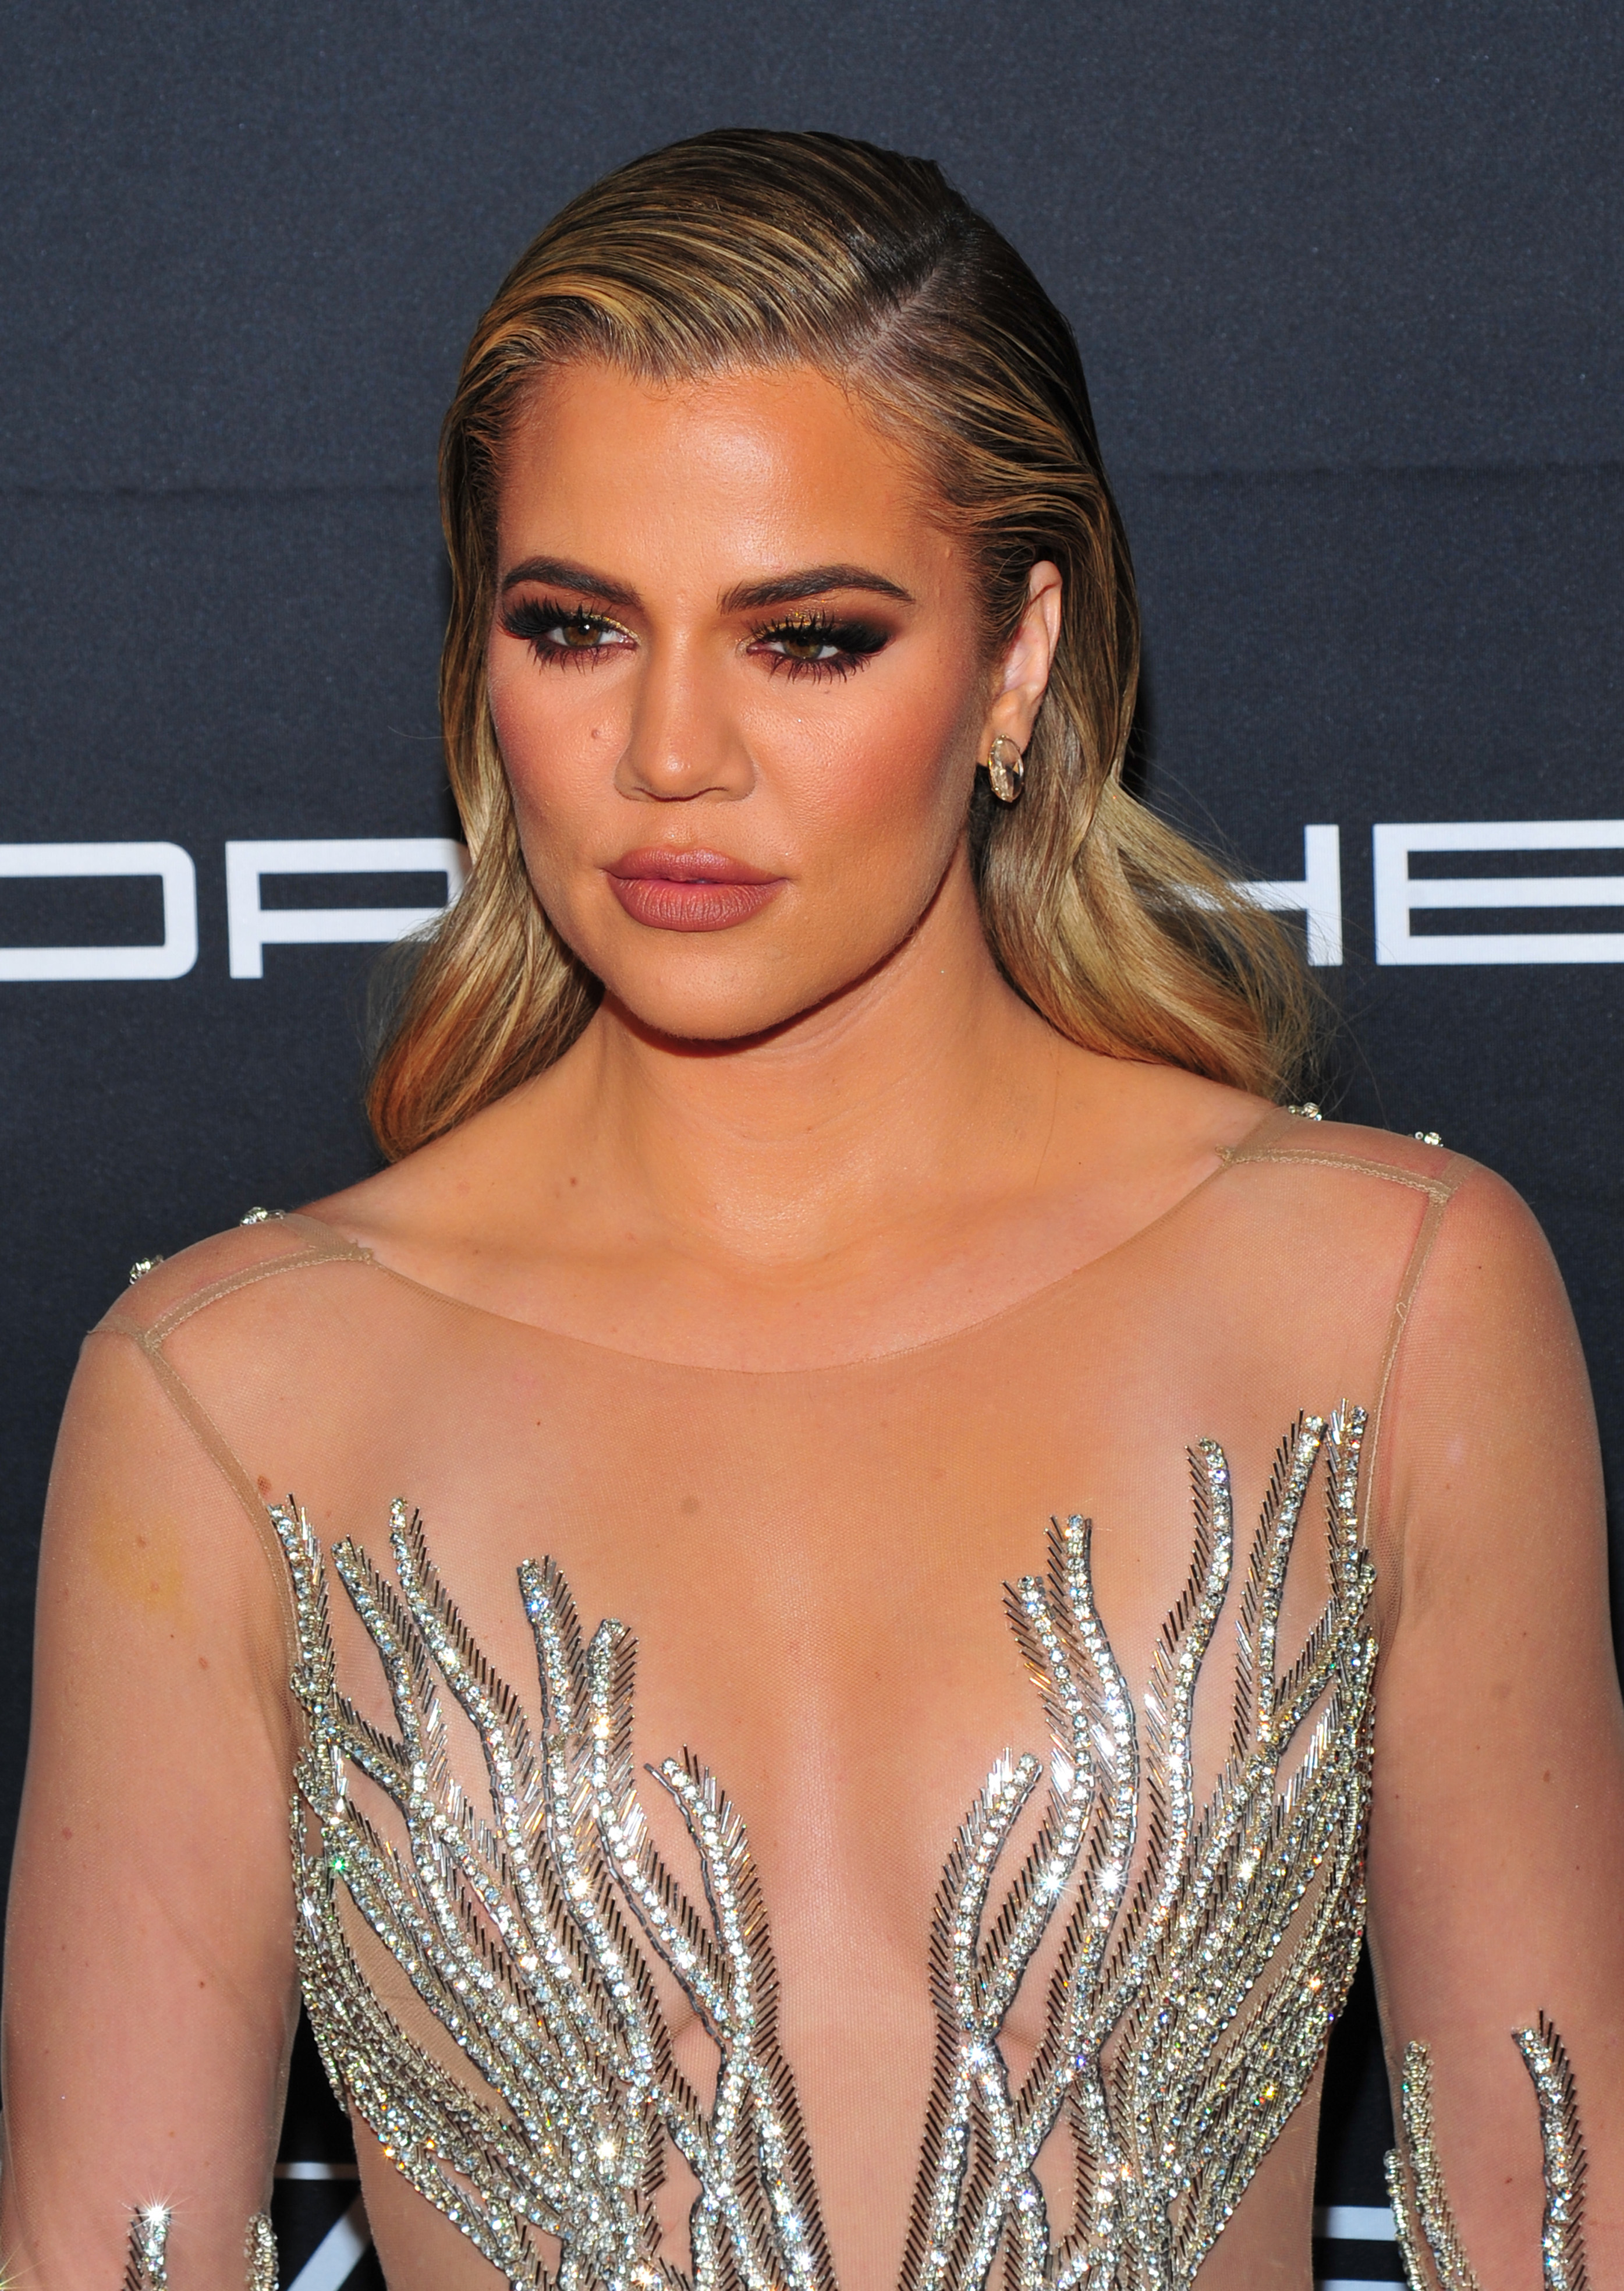 New York, NY - Khloe Kardashian at the 2016 Angel Ball hosted by Gabrielle's Angel Foundation For Cancer Research, held at Cipriani's.            November 21, 2016, Image: 306504675, License: Rights-managed, Restrictions: , Model Release: no, Credit line: Profimedia, AKM-GSI